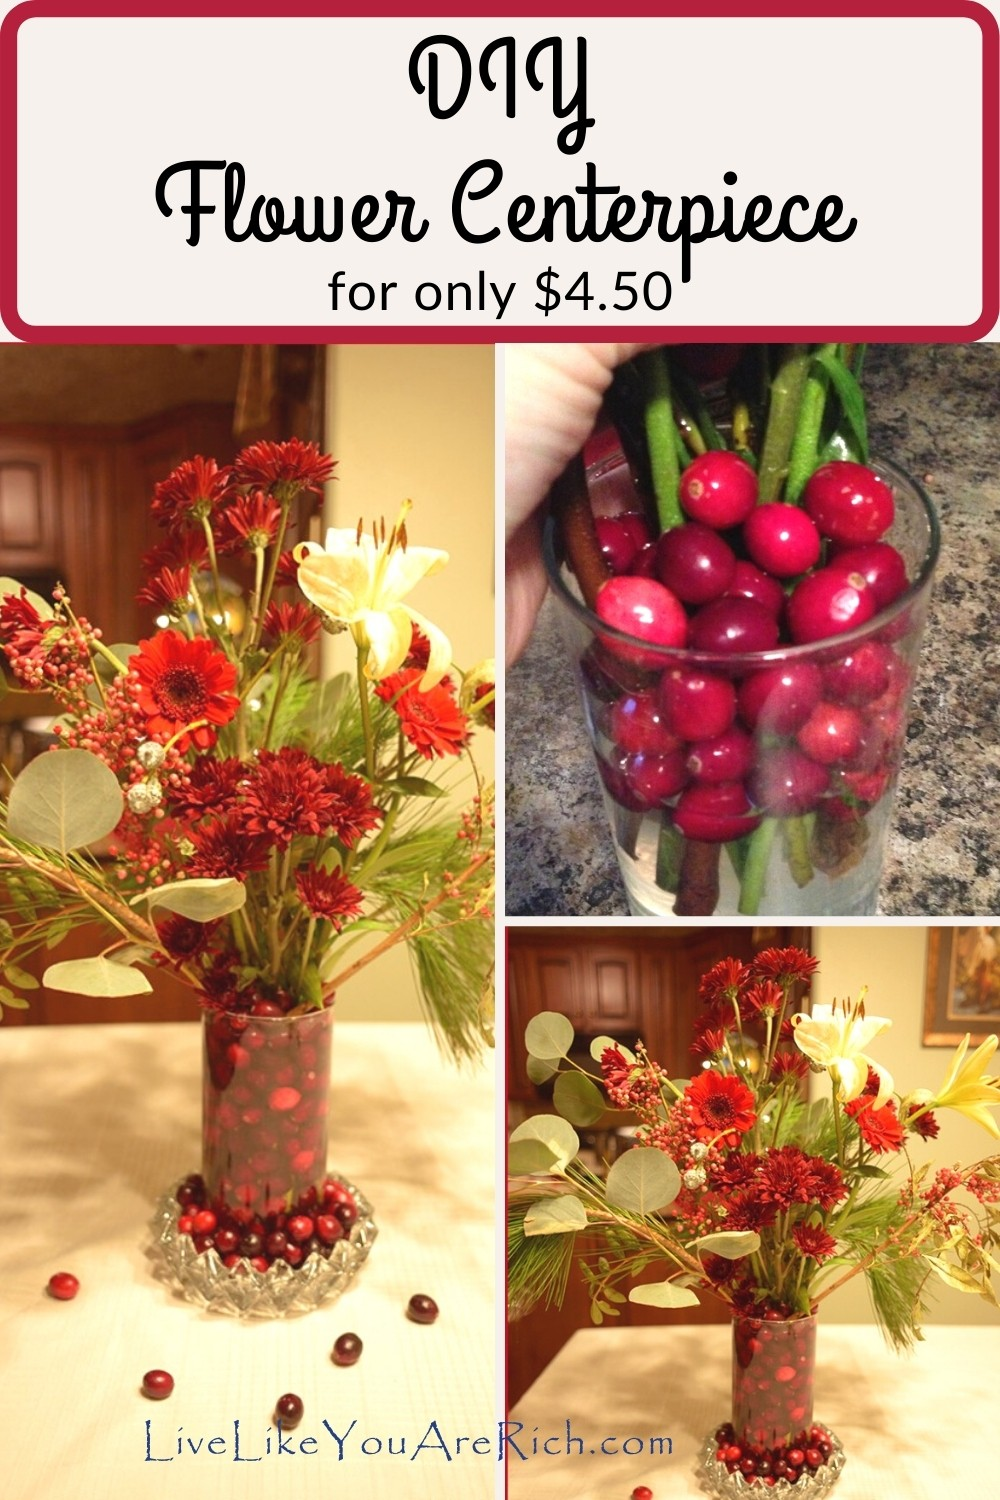 D.I.Y. $4.50 Centerpiece. Impress guests with fresh flowers, cranberries and more this winter without spending over $5.00